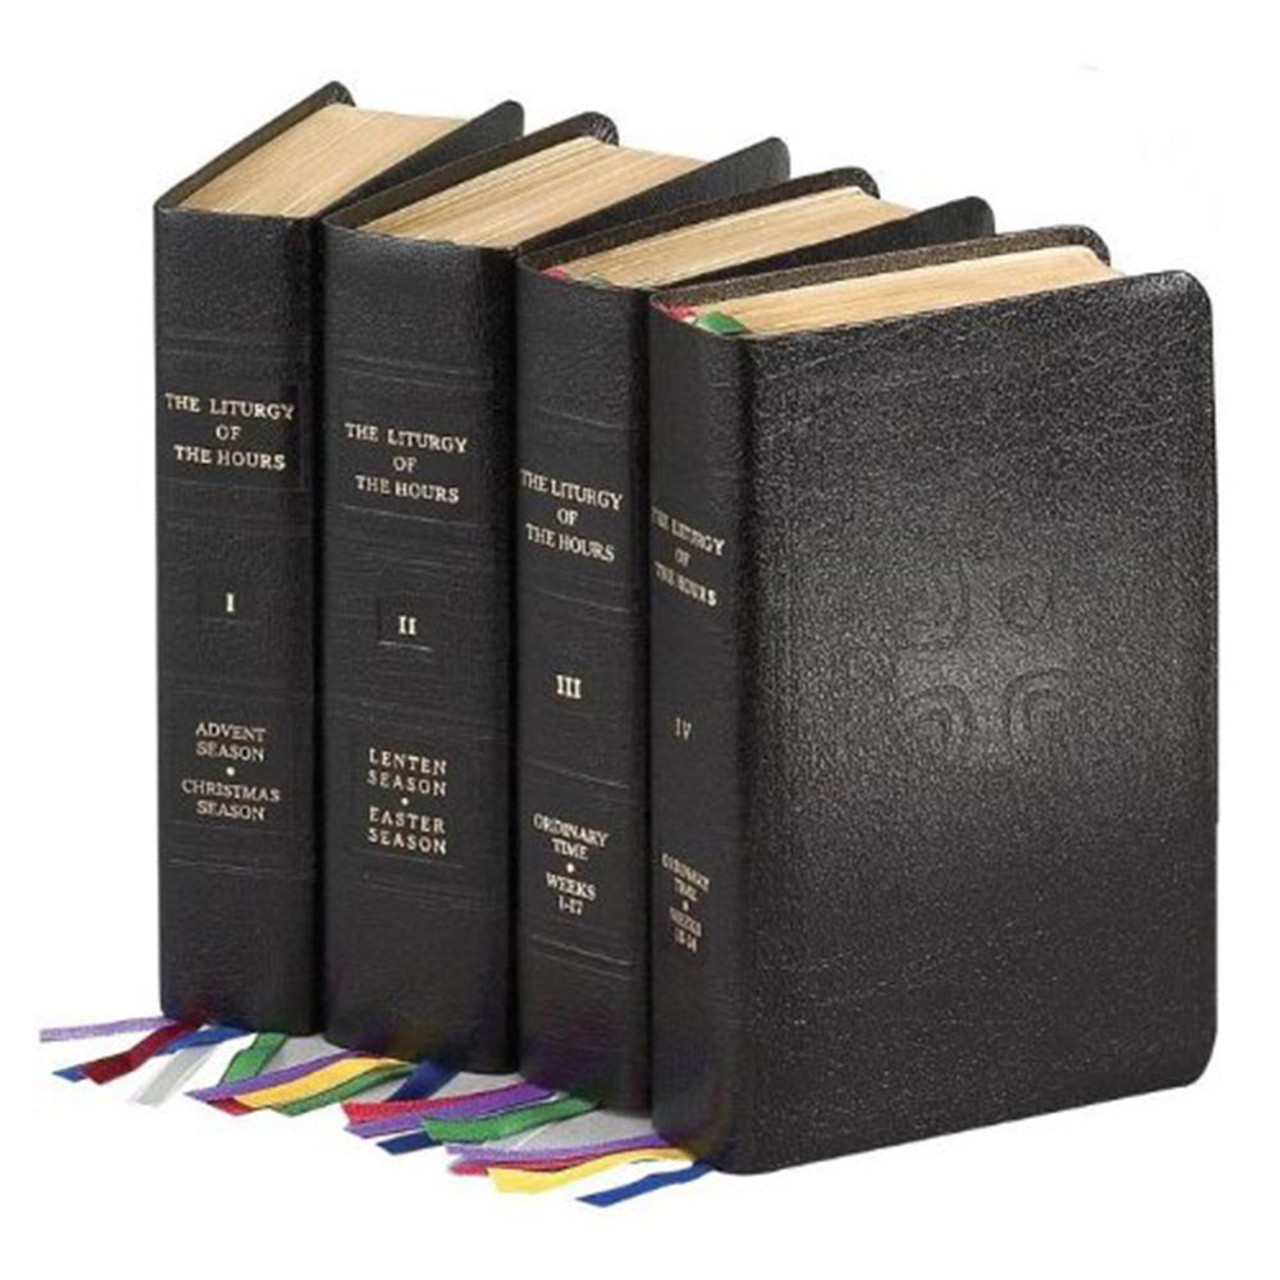 Official Liturgy of the Hours 4 Vol Set Bound in Bonded Leather